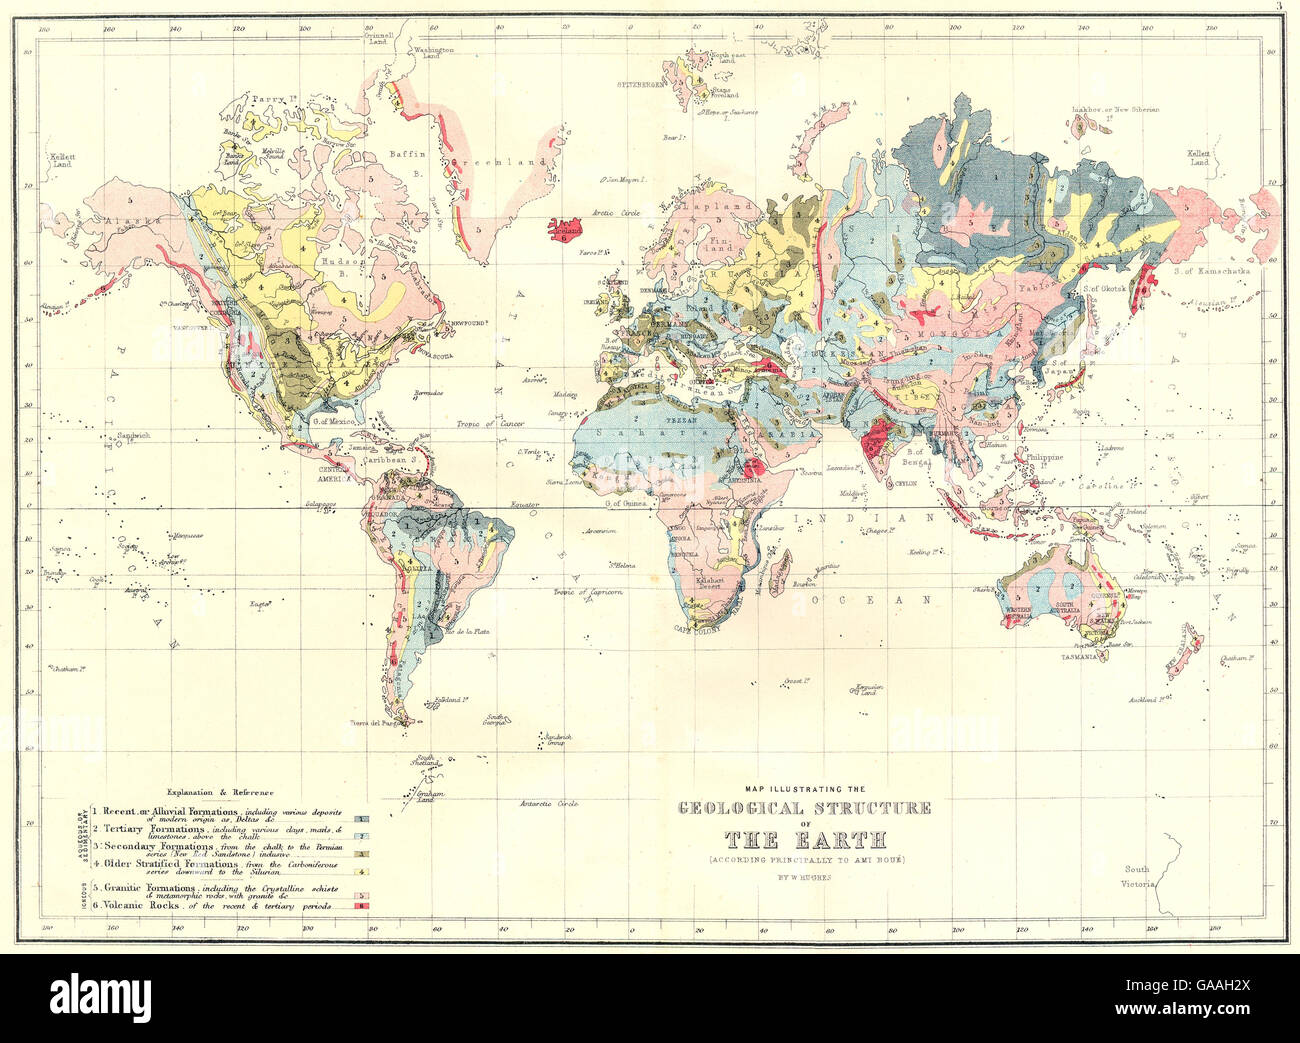 Geological Map Of World Stock Photos Geological Map Of